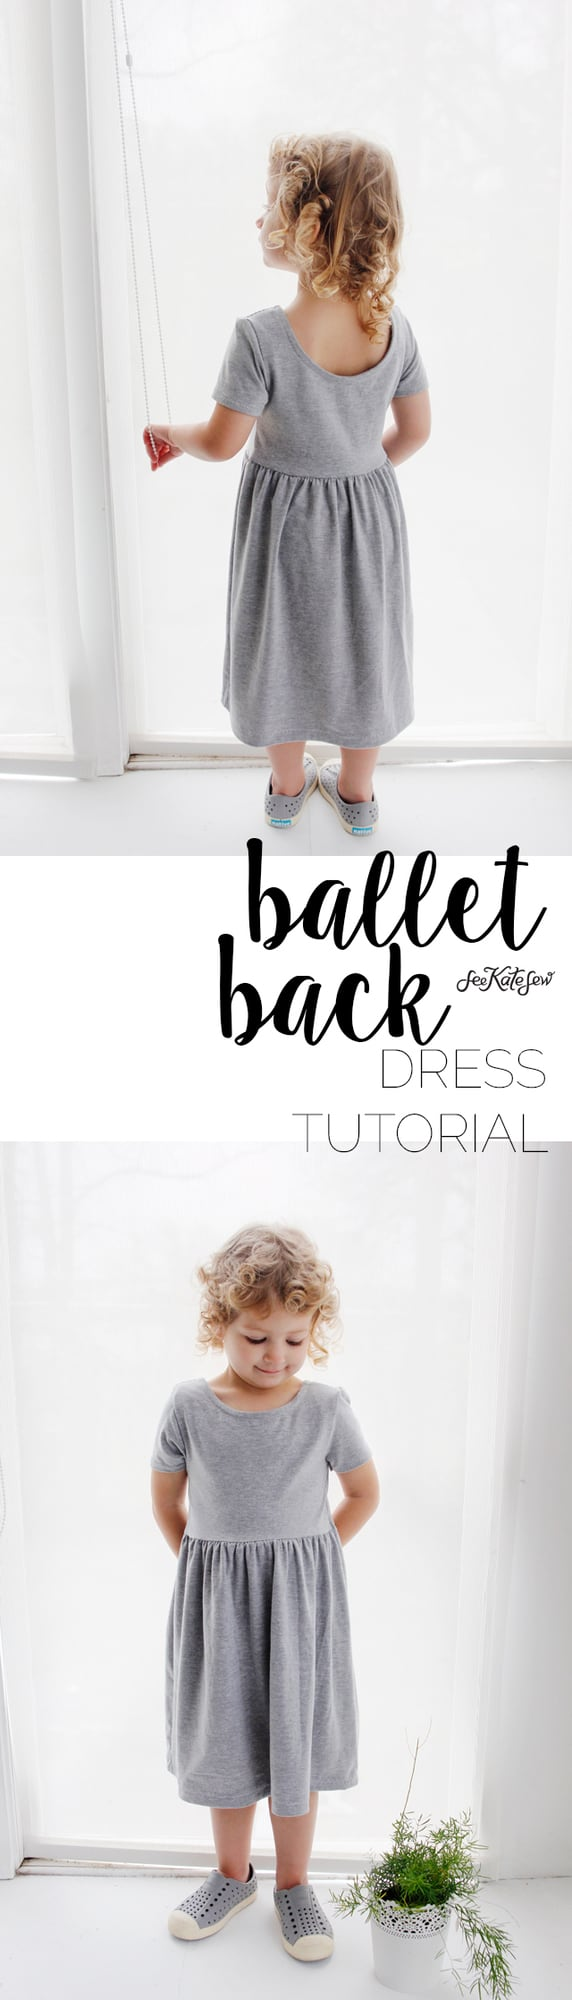 Ballet Back Dress Tutorial | See Kate Sew